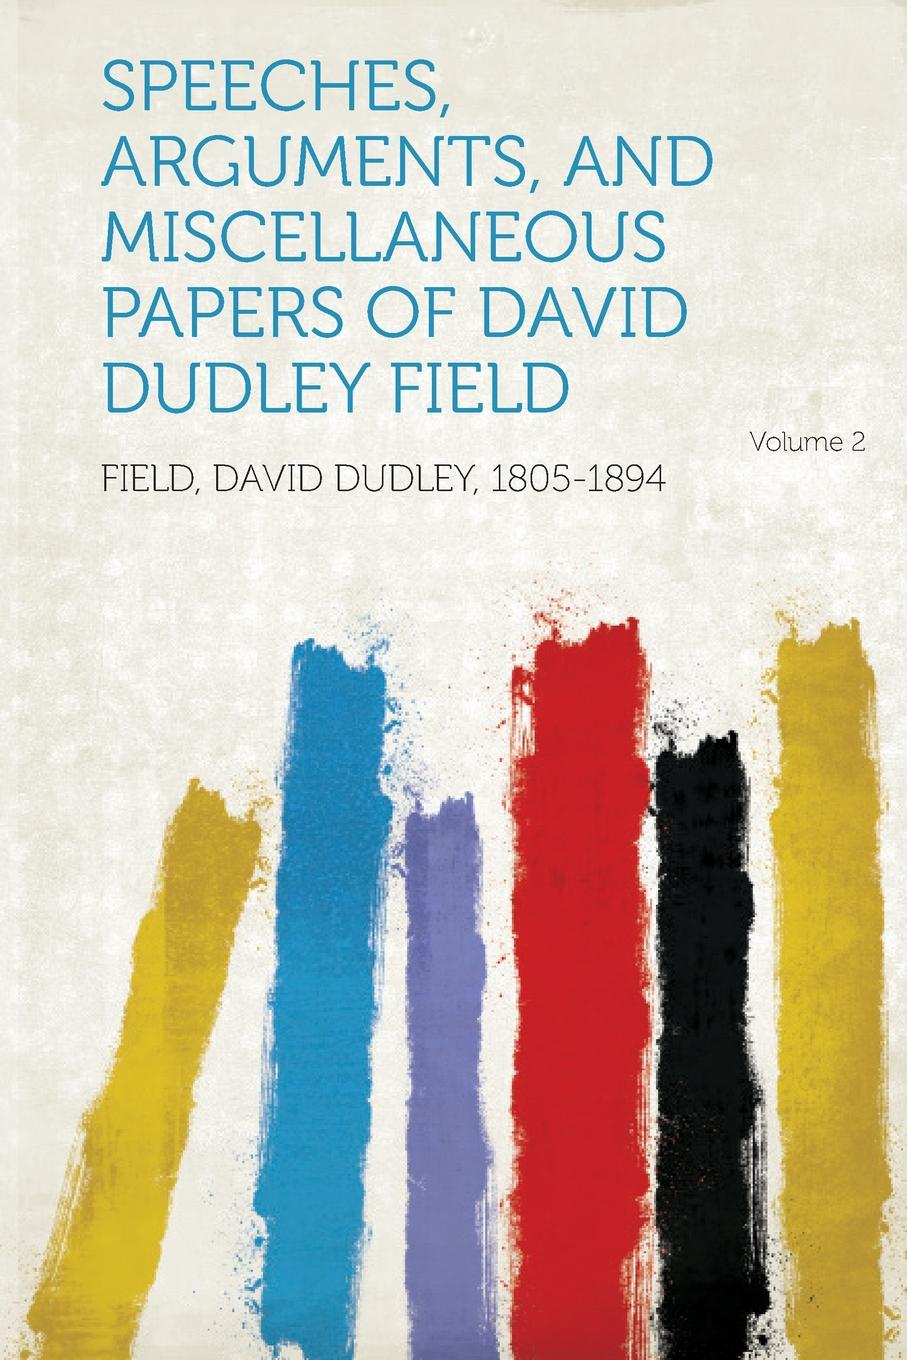 Field David Dudley 1805-1894 Speeches, Arguments, and Miscellaneous Papers of David Dudley Field Volume 2 field david dudley the vote that made the president